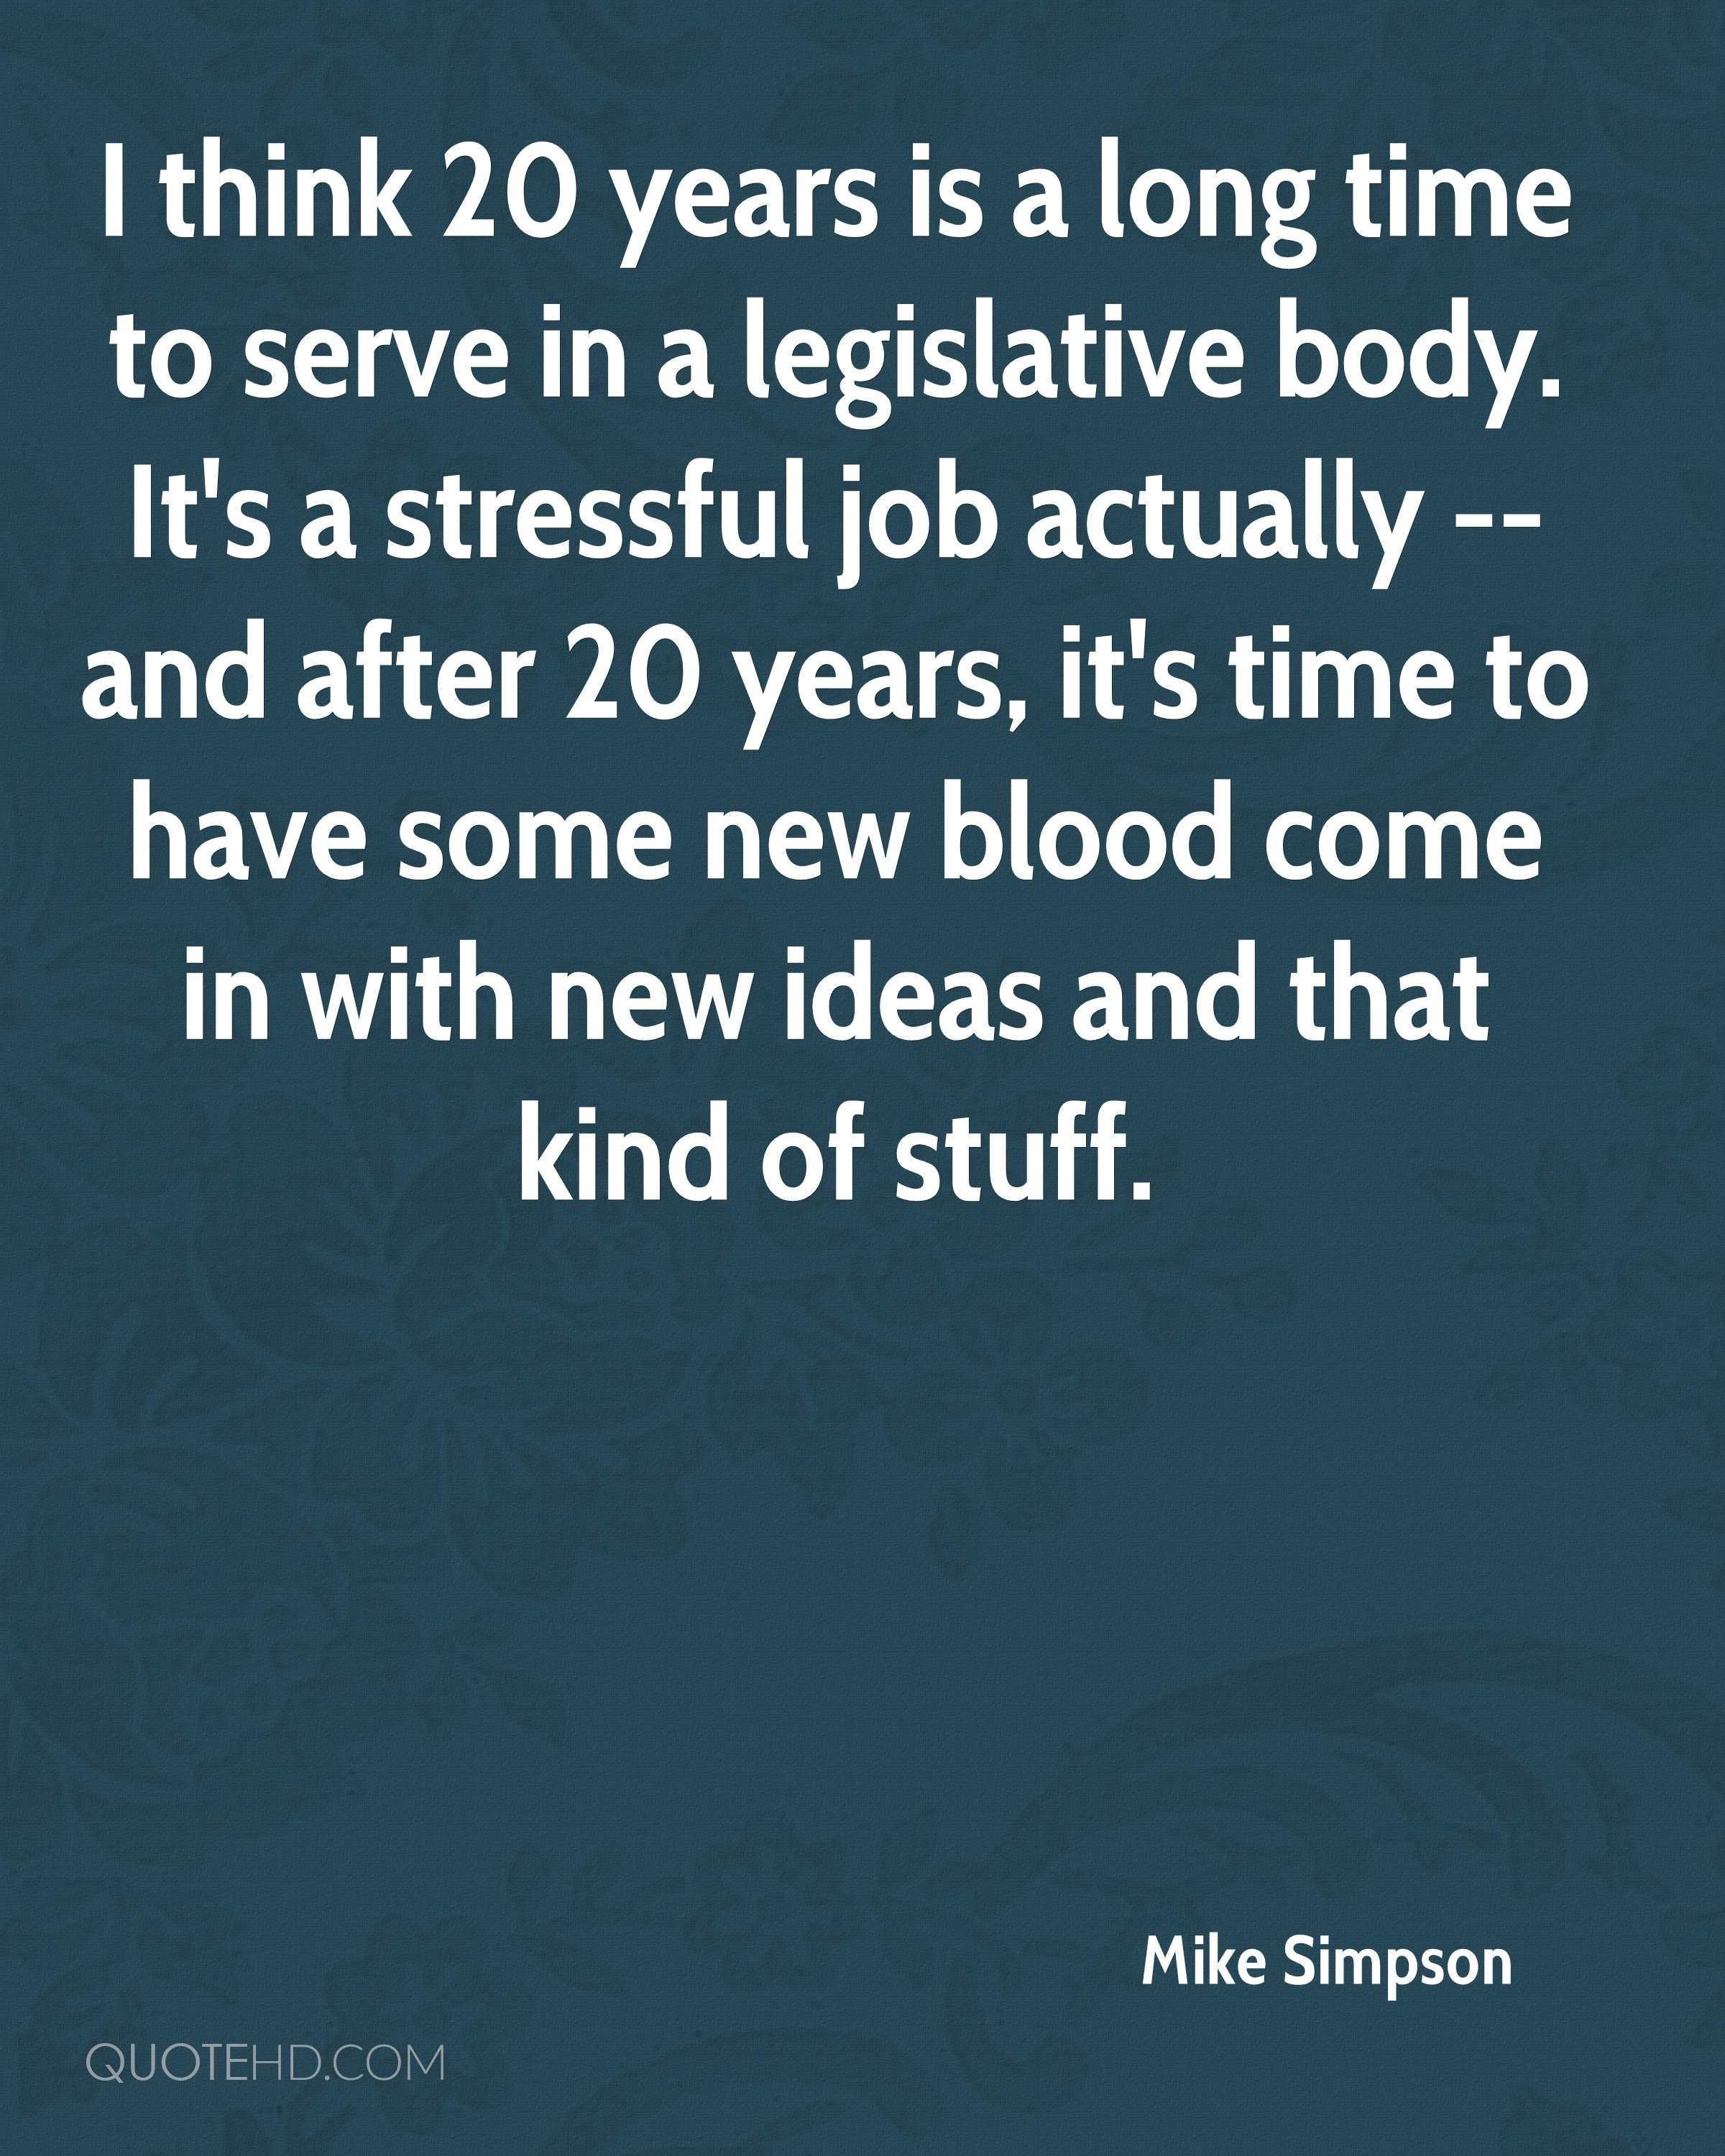 I think 20 years is a long time to serve in a legislative body. It's a stressful job actually -- and after 20 years, it's time to have some new blood come in with new ideas and that kind of stuff.